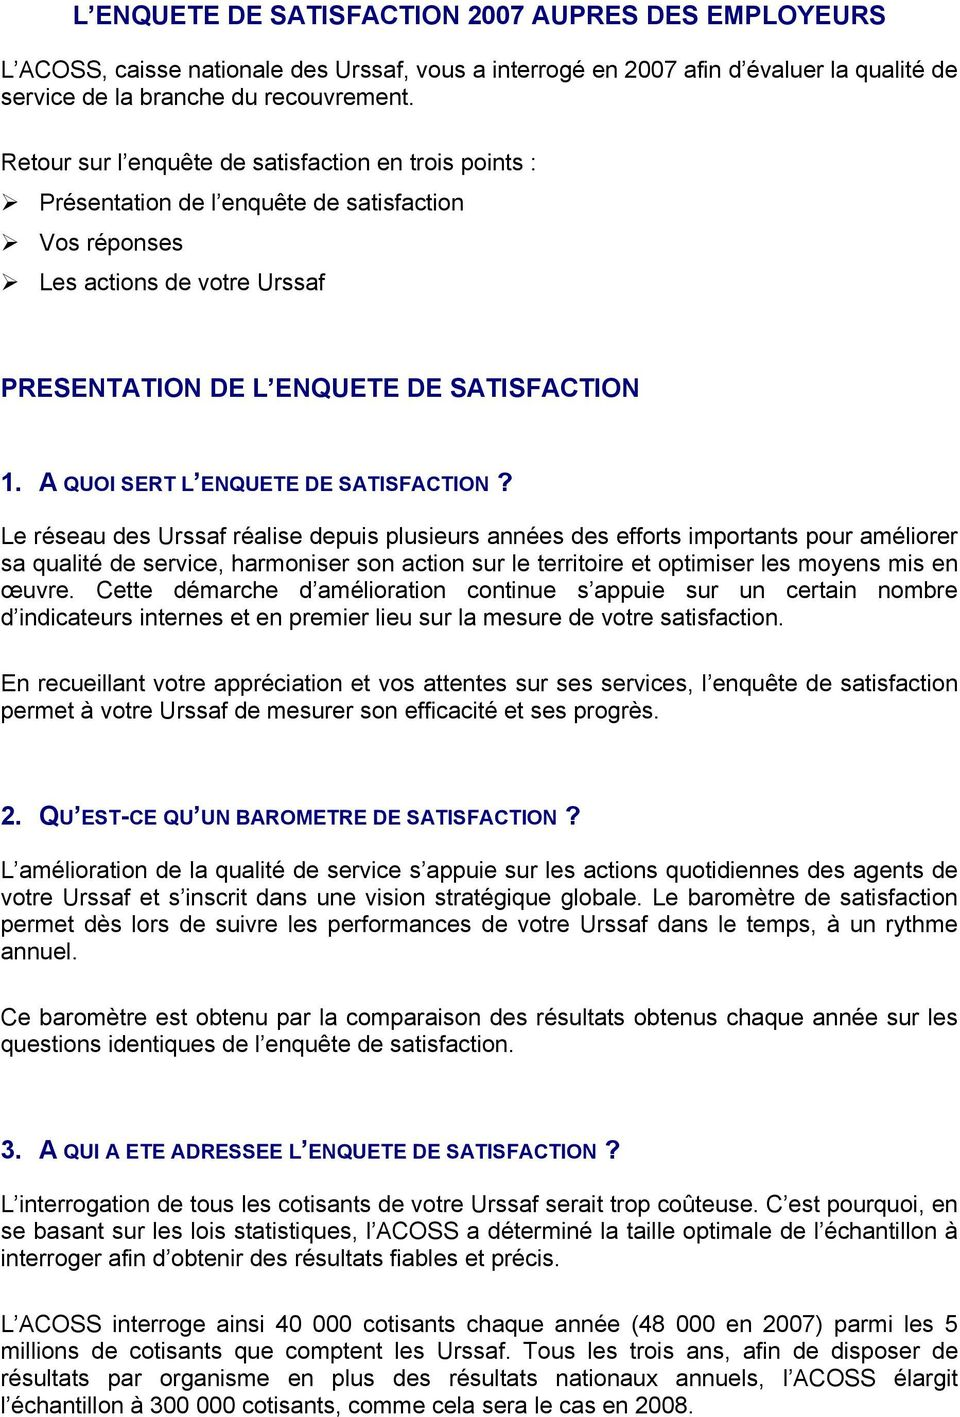 A QUOI SERT L ENQUETE DE SATISFACTION?